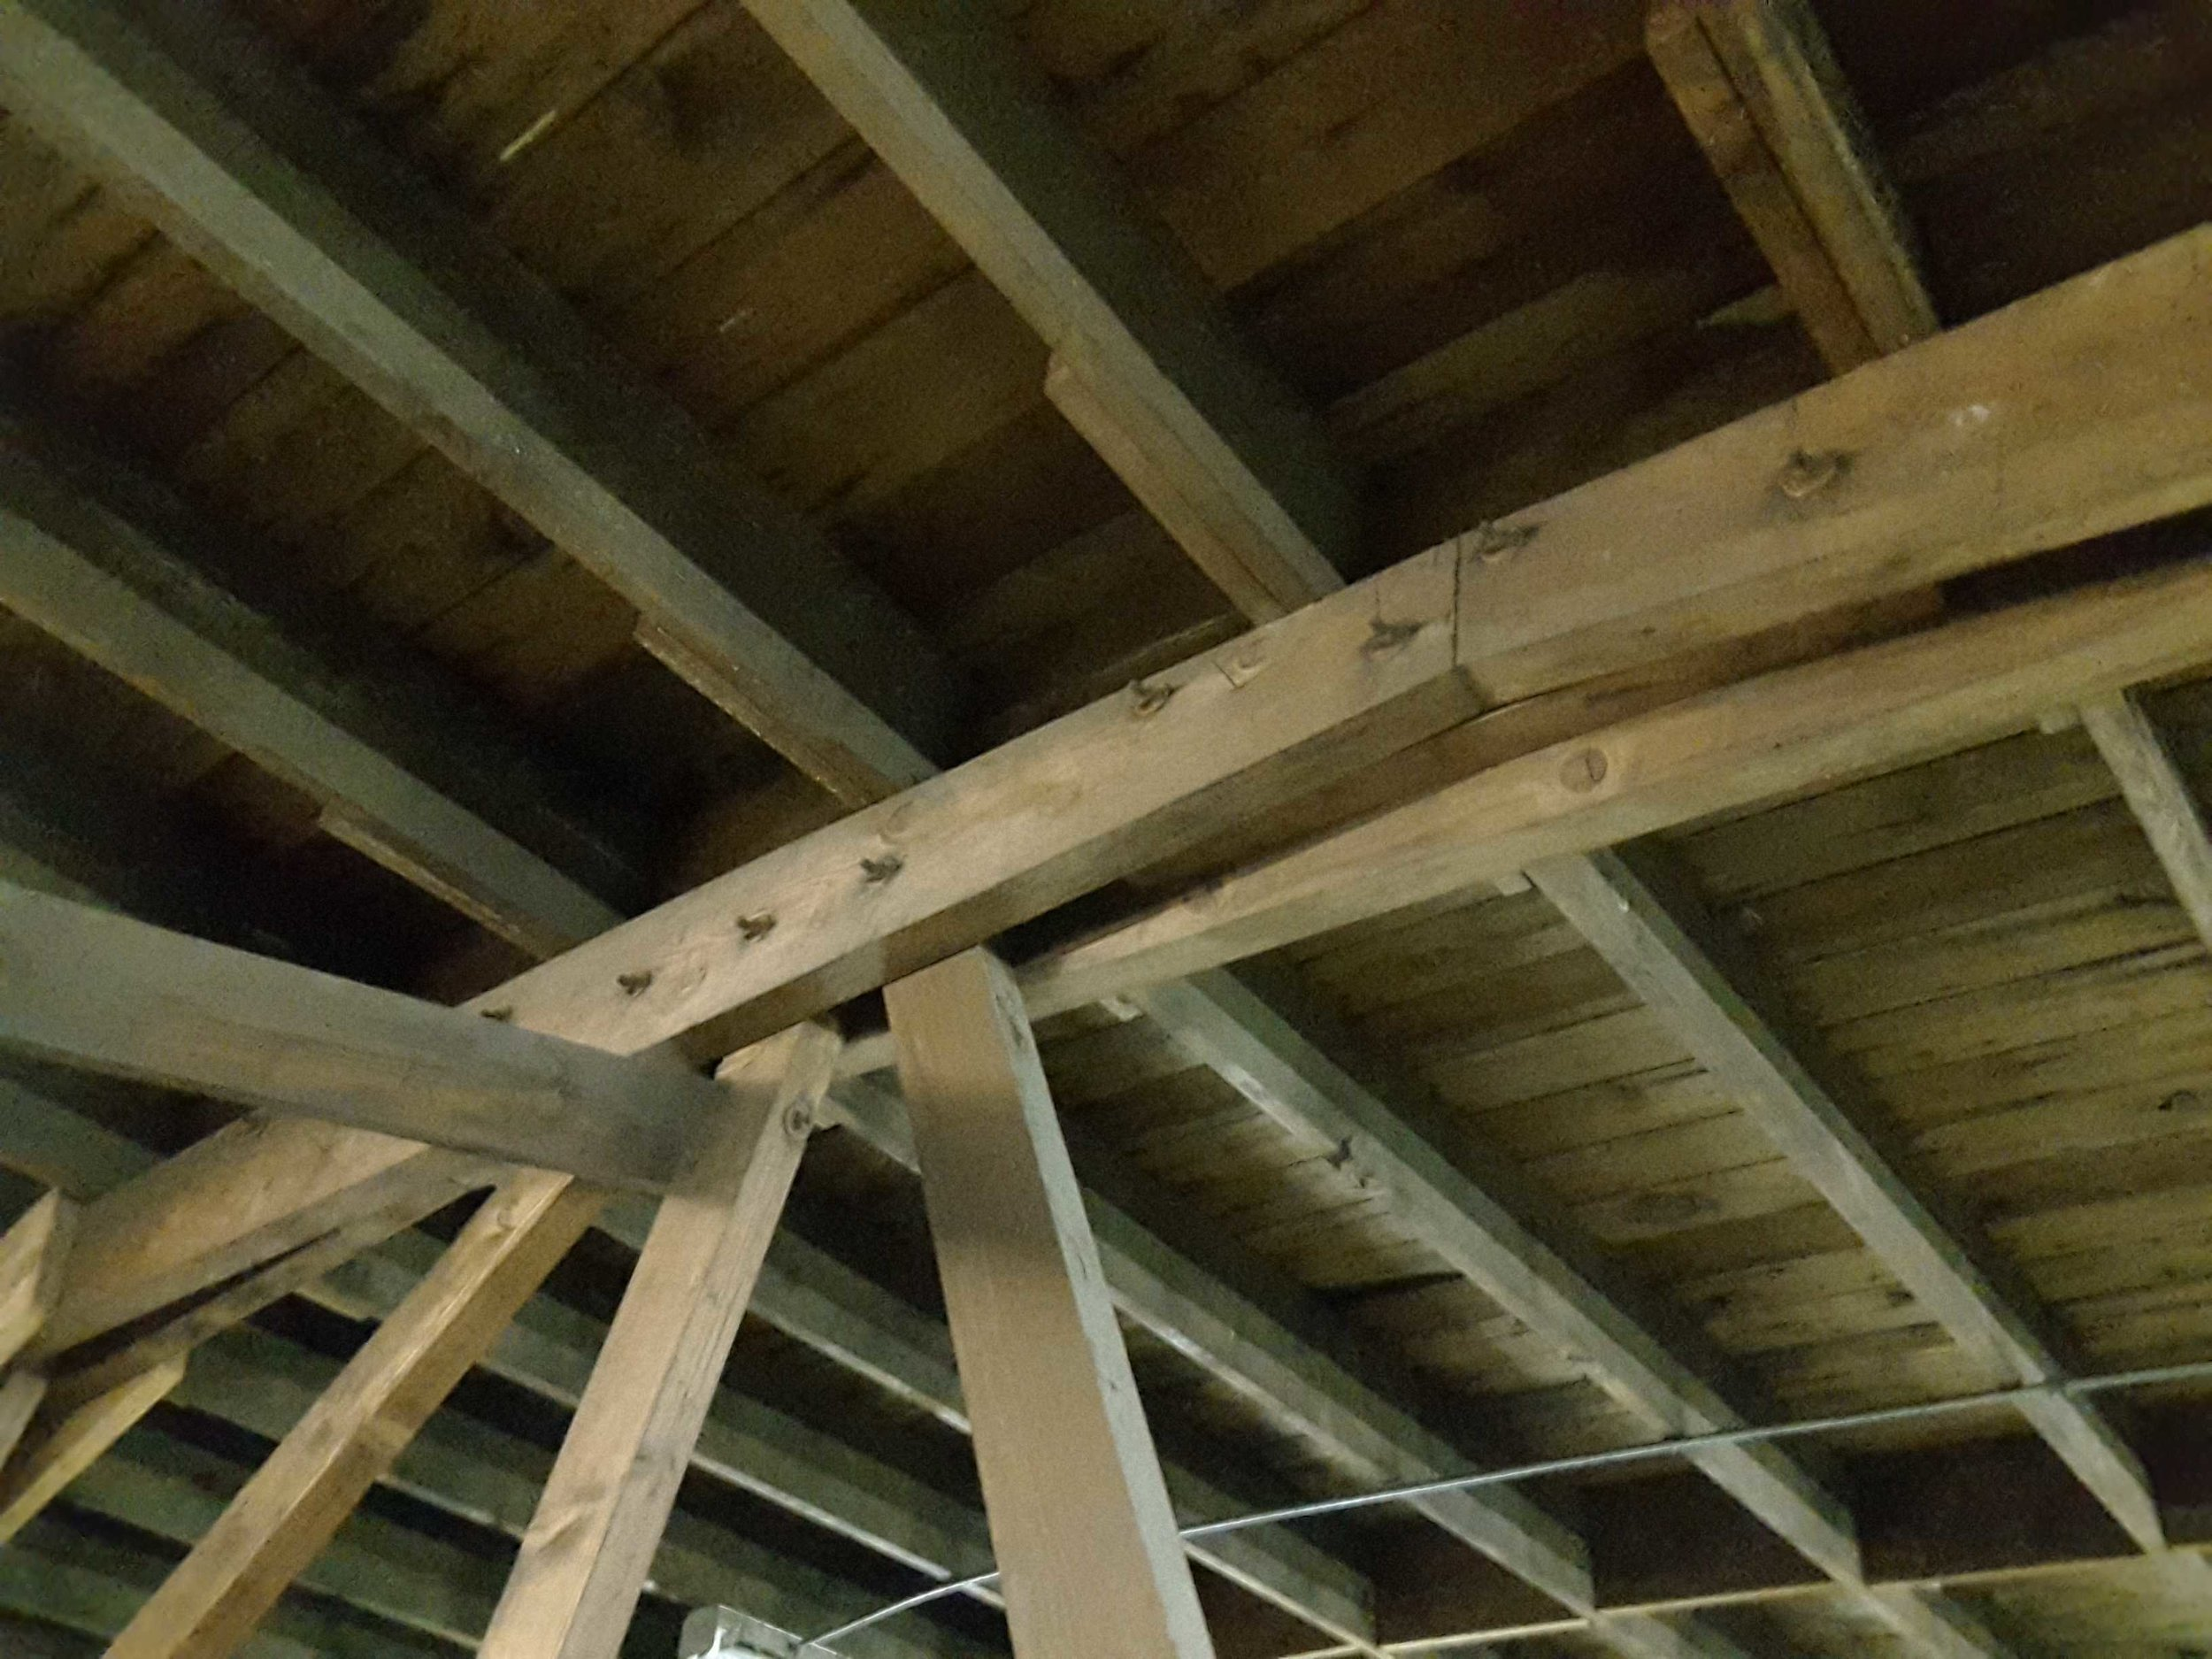 Top Timber of Bowstring Roof